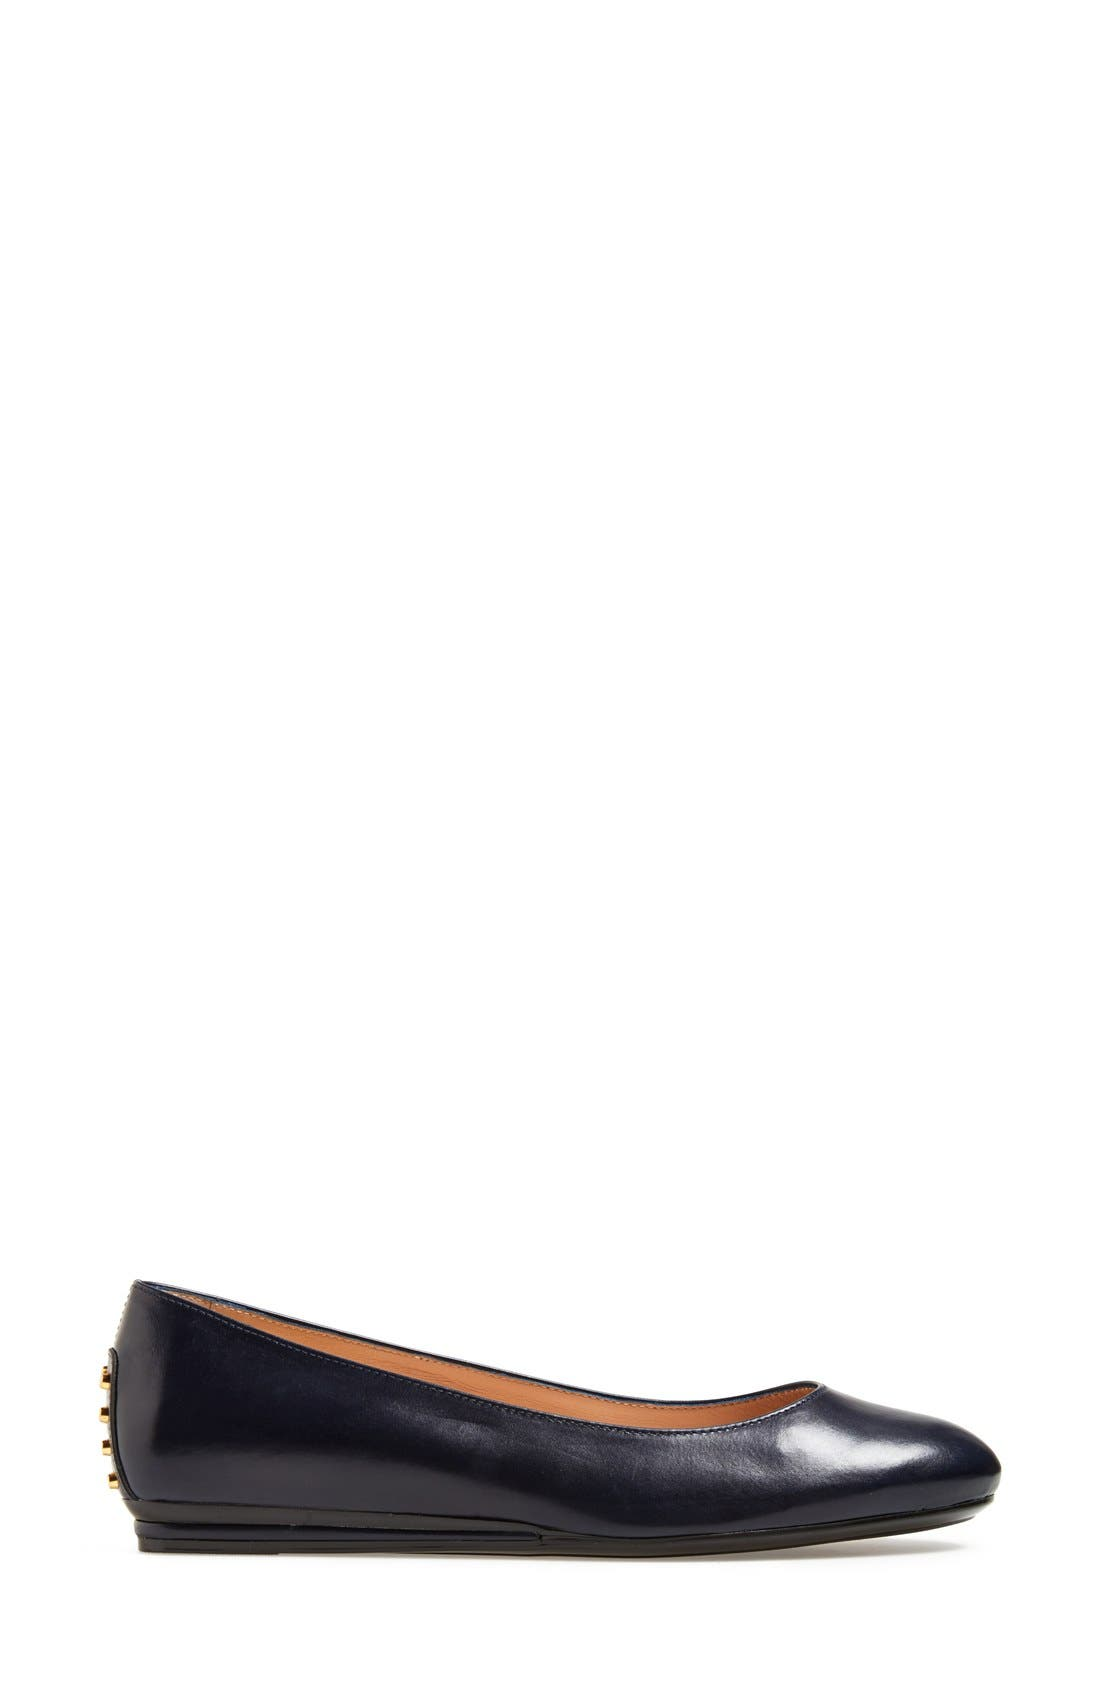 Alternate Image 3  - Tod's Demi Wedge Ballet Flat